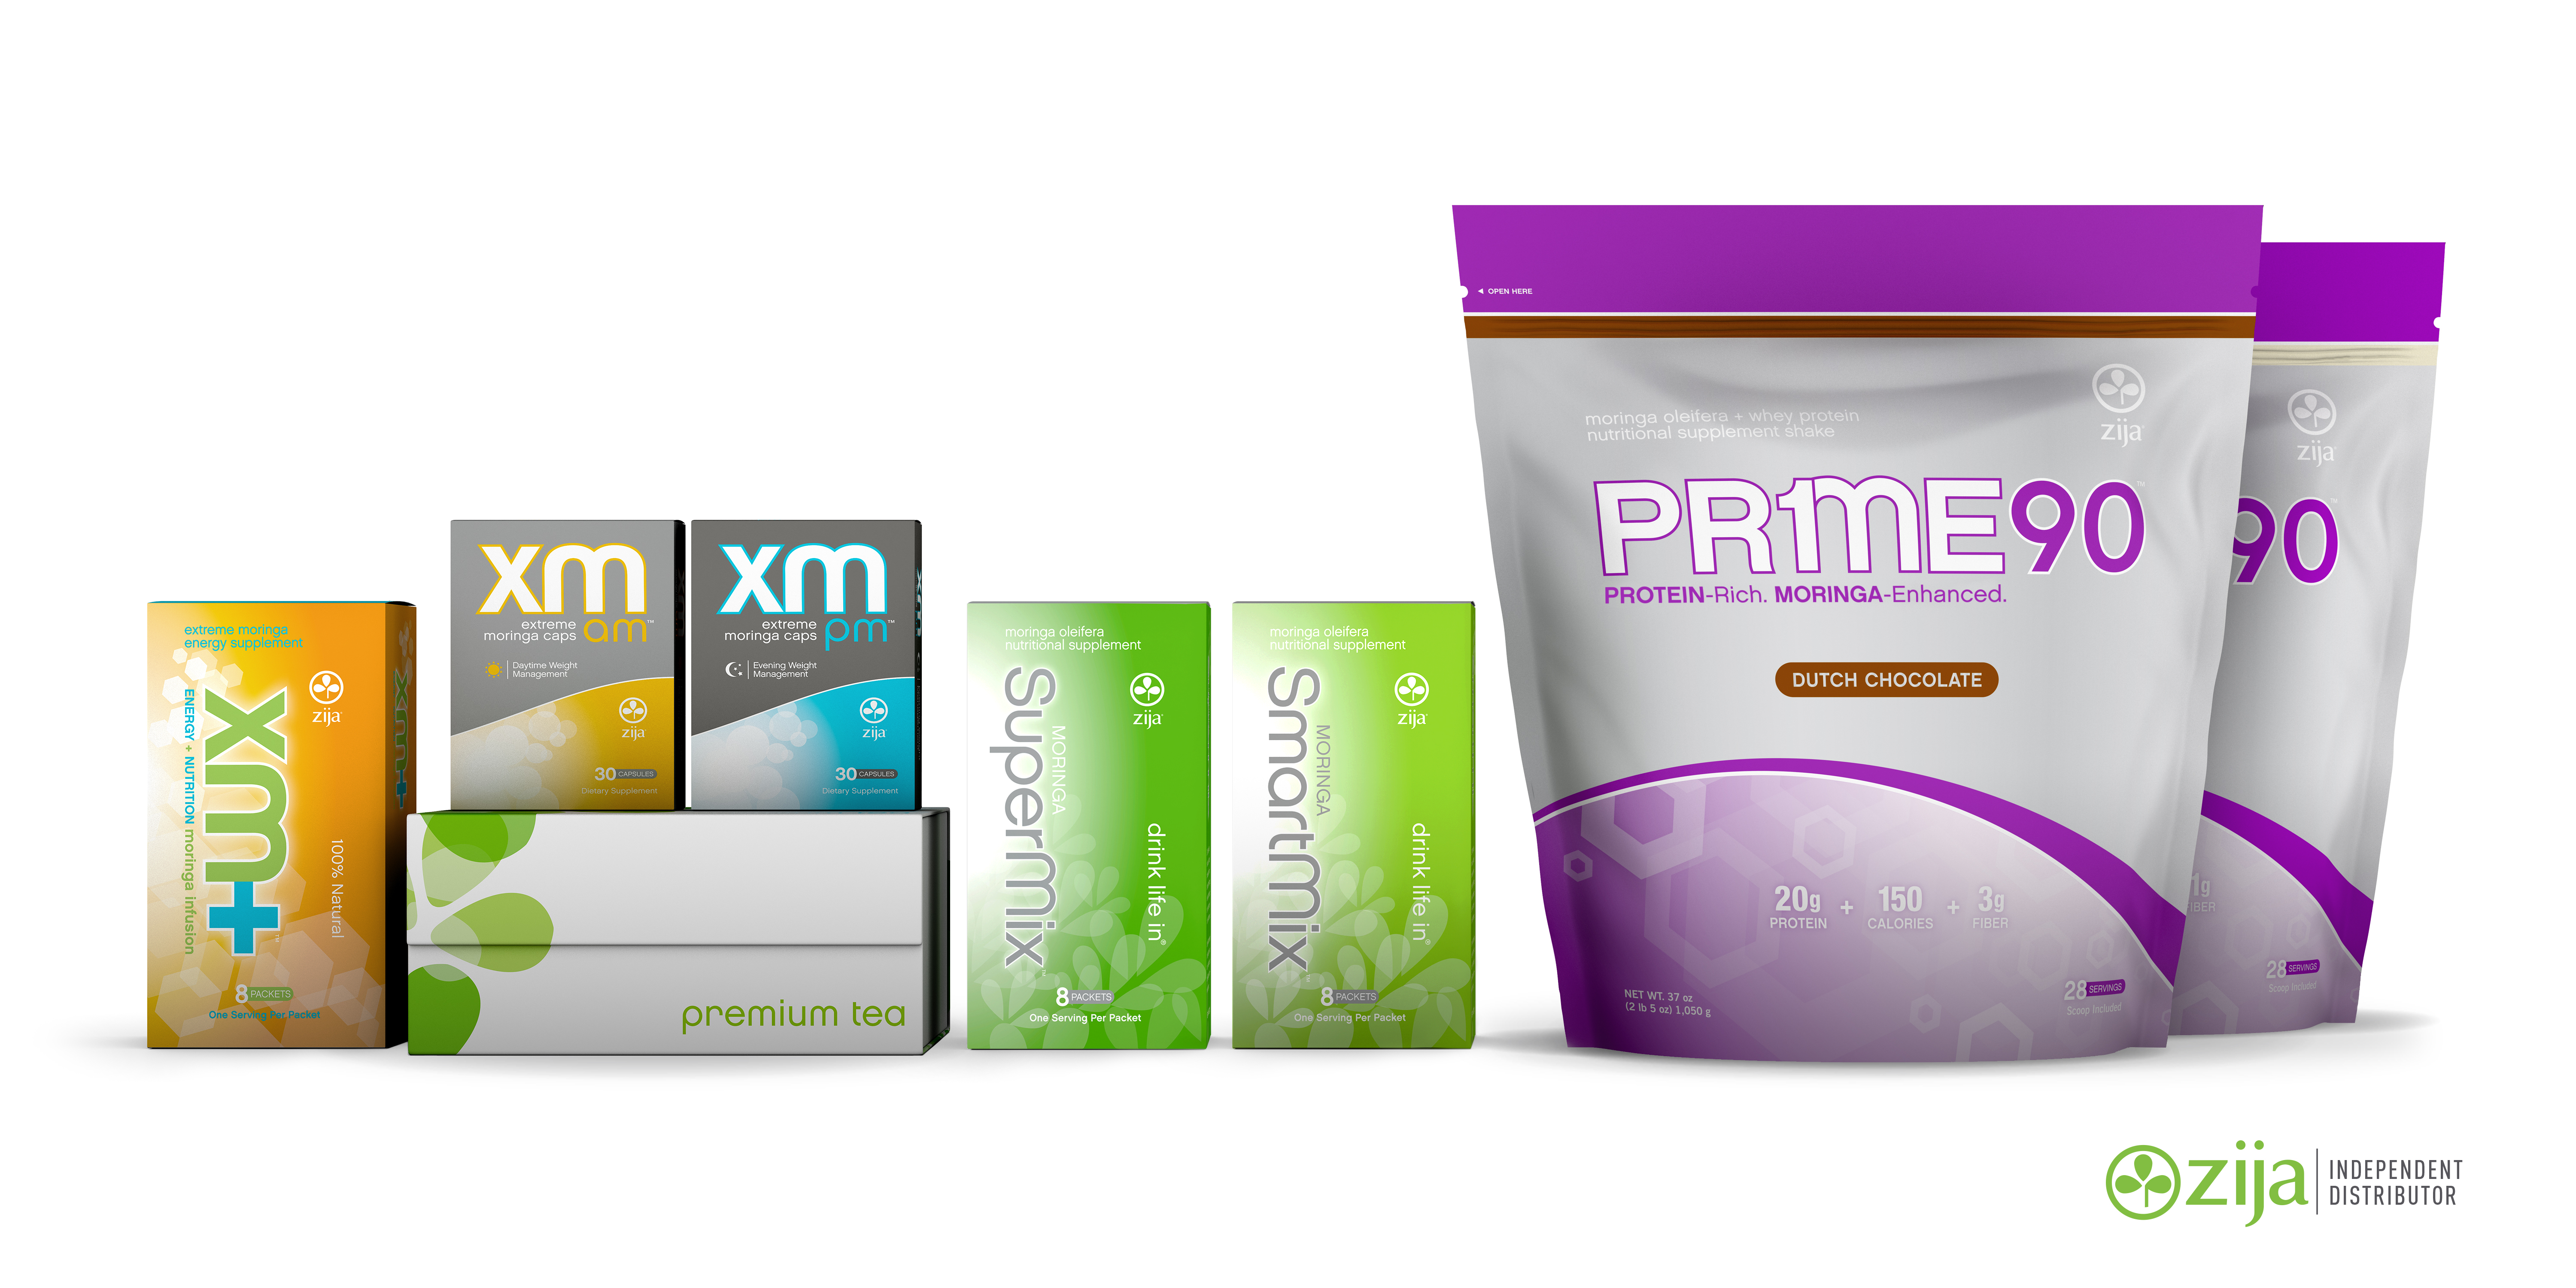 nutrition com the zija weight management system addresses weight gain one of those serious and painful realities which are so hard to deal